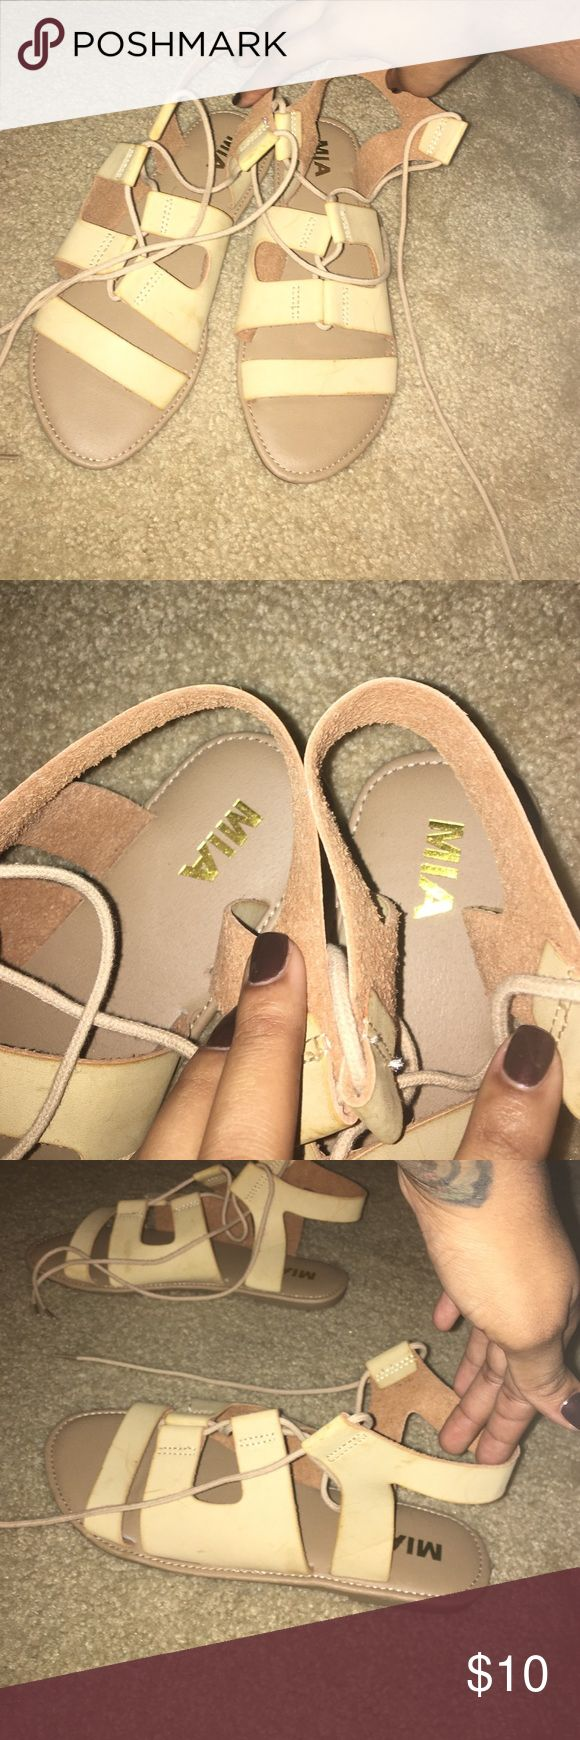 NEW Nude gladiator Jesus like sandals The perfect nude hippie sandal to pair with a summer dress or cut offs this summer/spring. never worn & purchased from DSW MIA Shoes Sandals